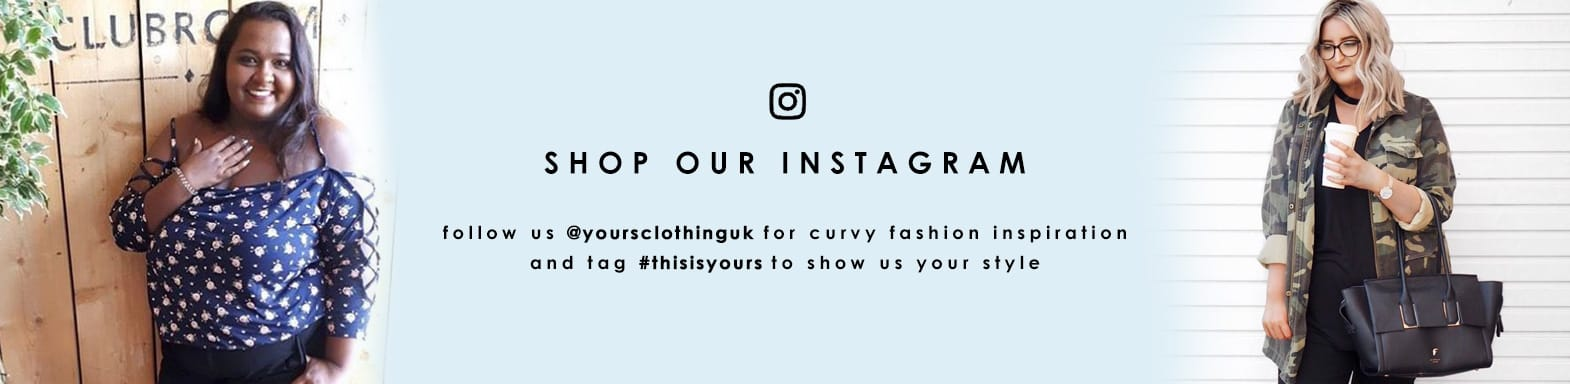 Shop out instagram - follow @yoursclothinguk for curvy fashion inspiration >